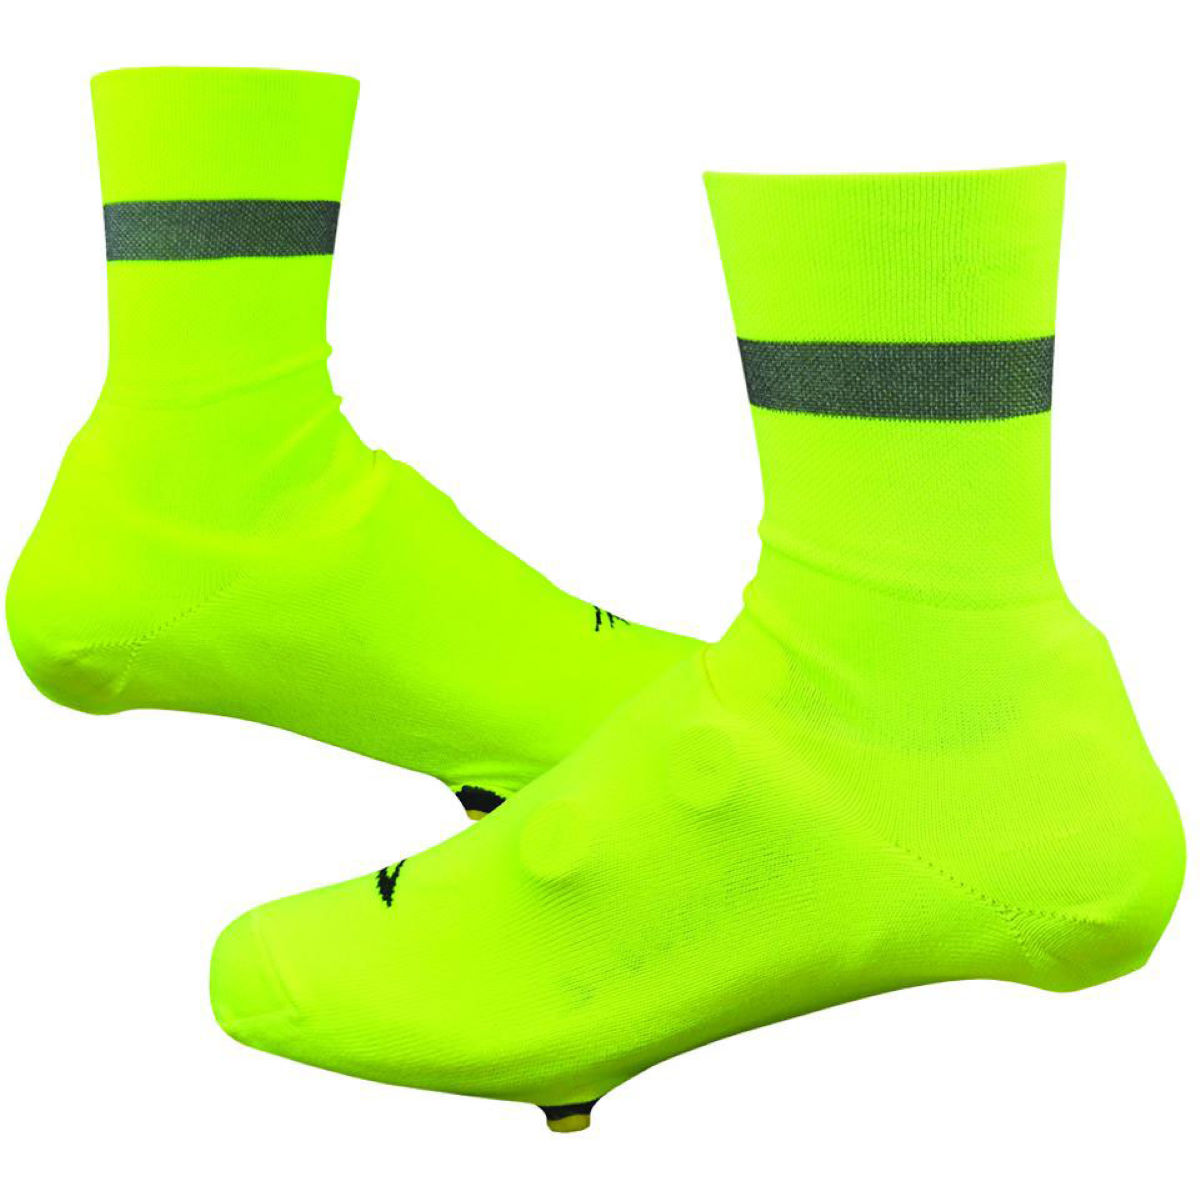 "DeFeet DeFeet Slipstream Reflective Stripe 4"" Overshoes   Overshoes"